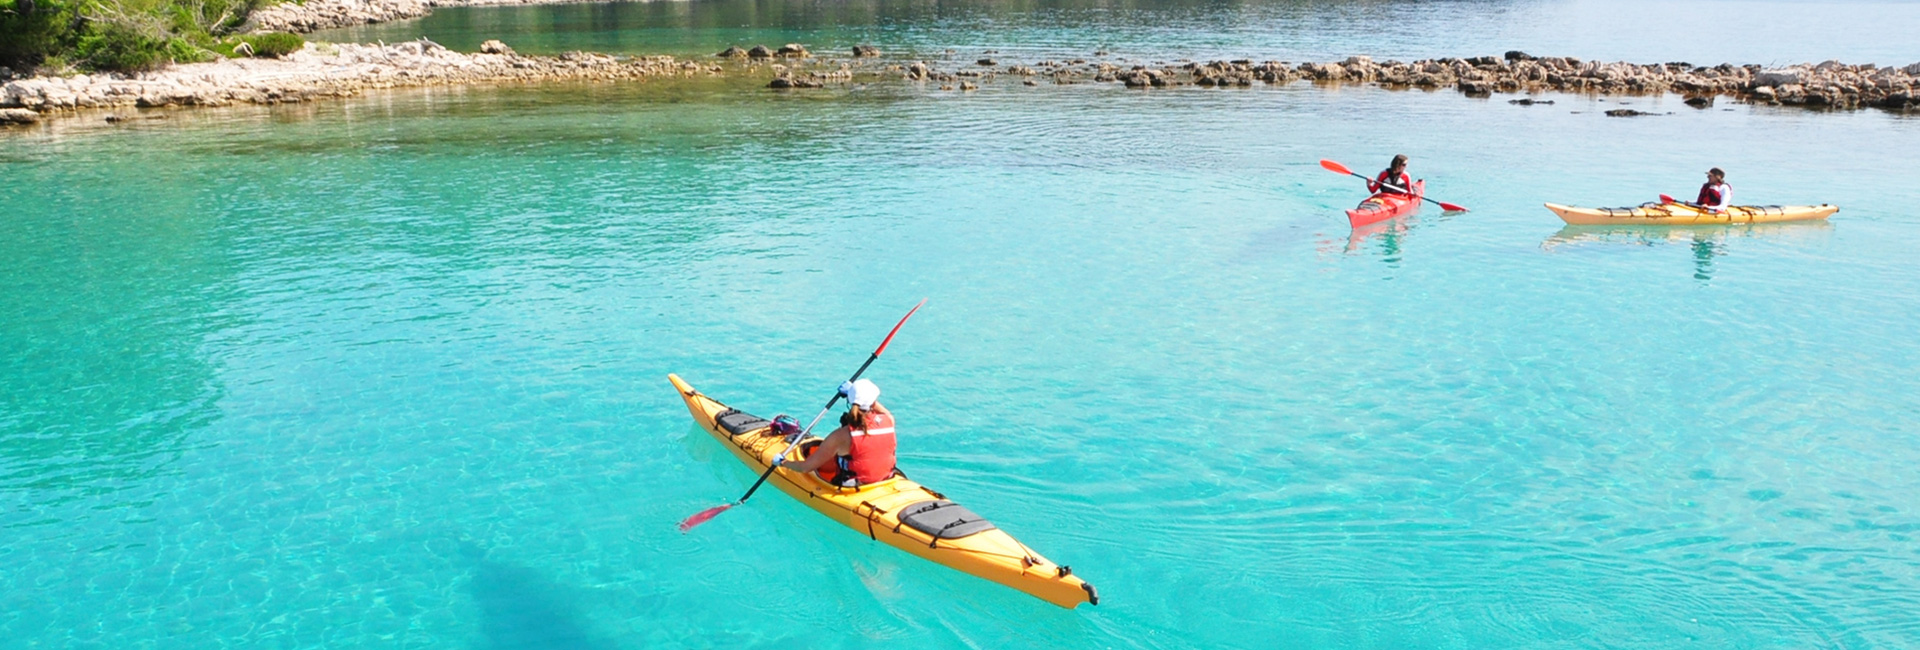 Sail-Kayak-header